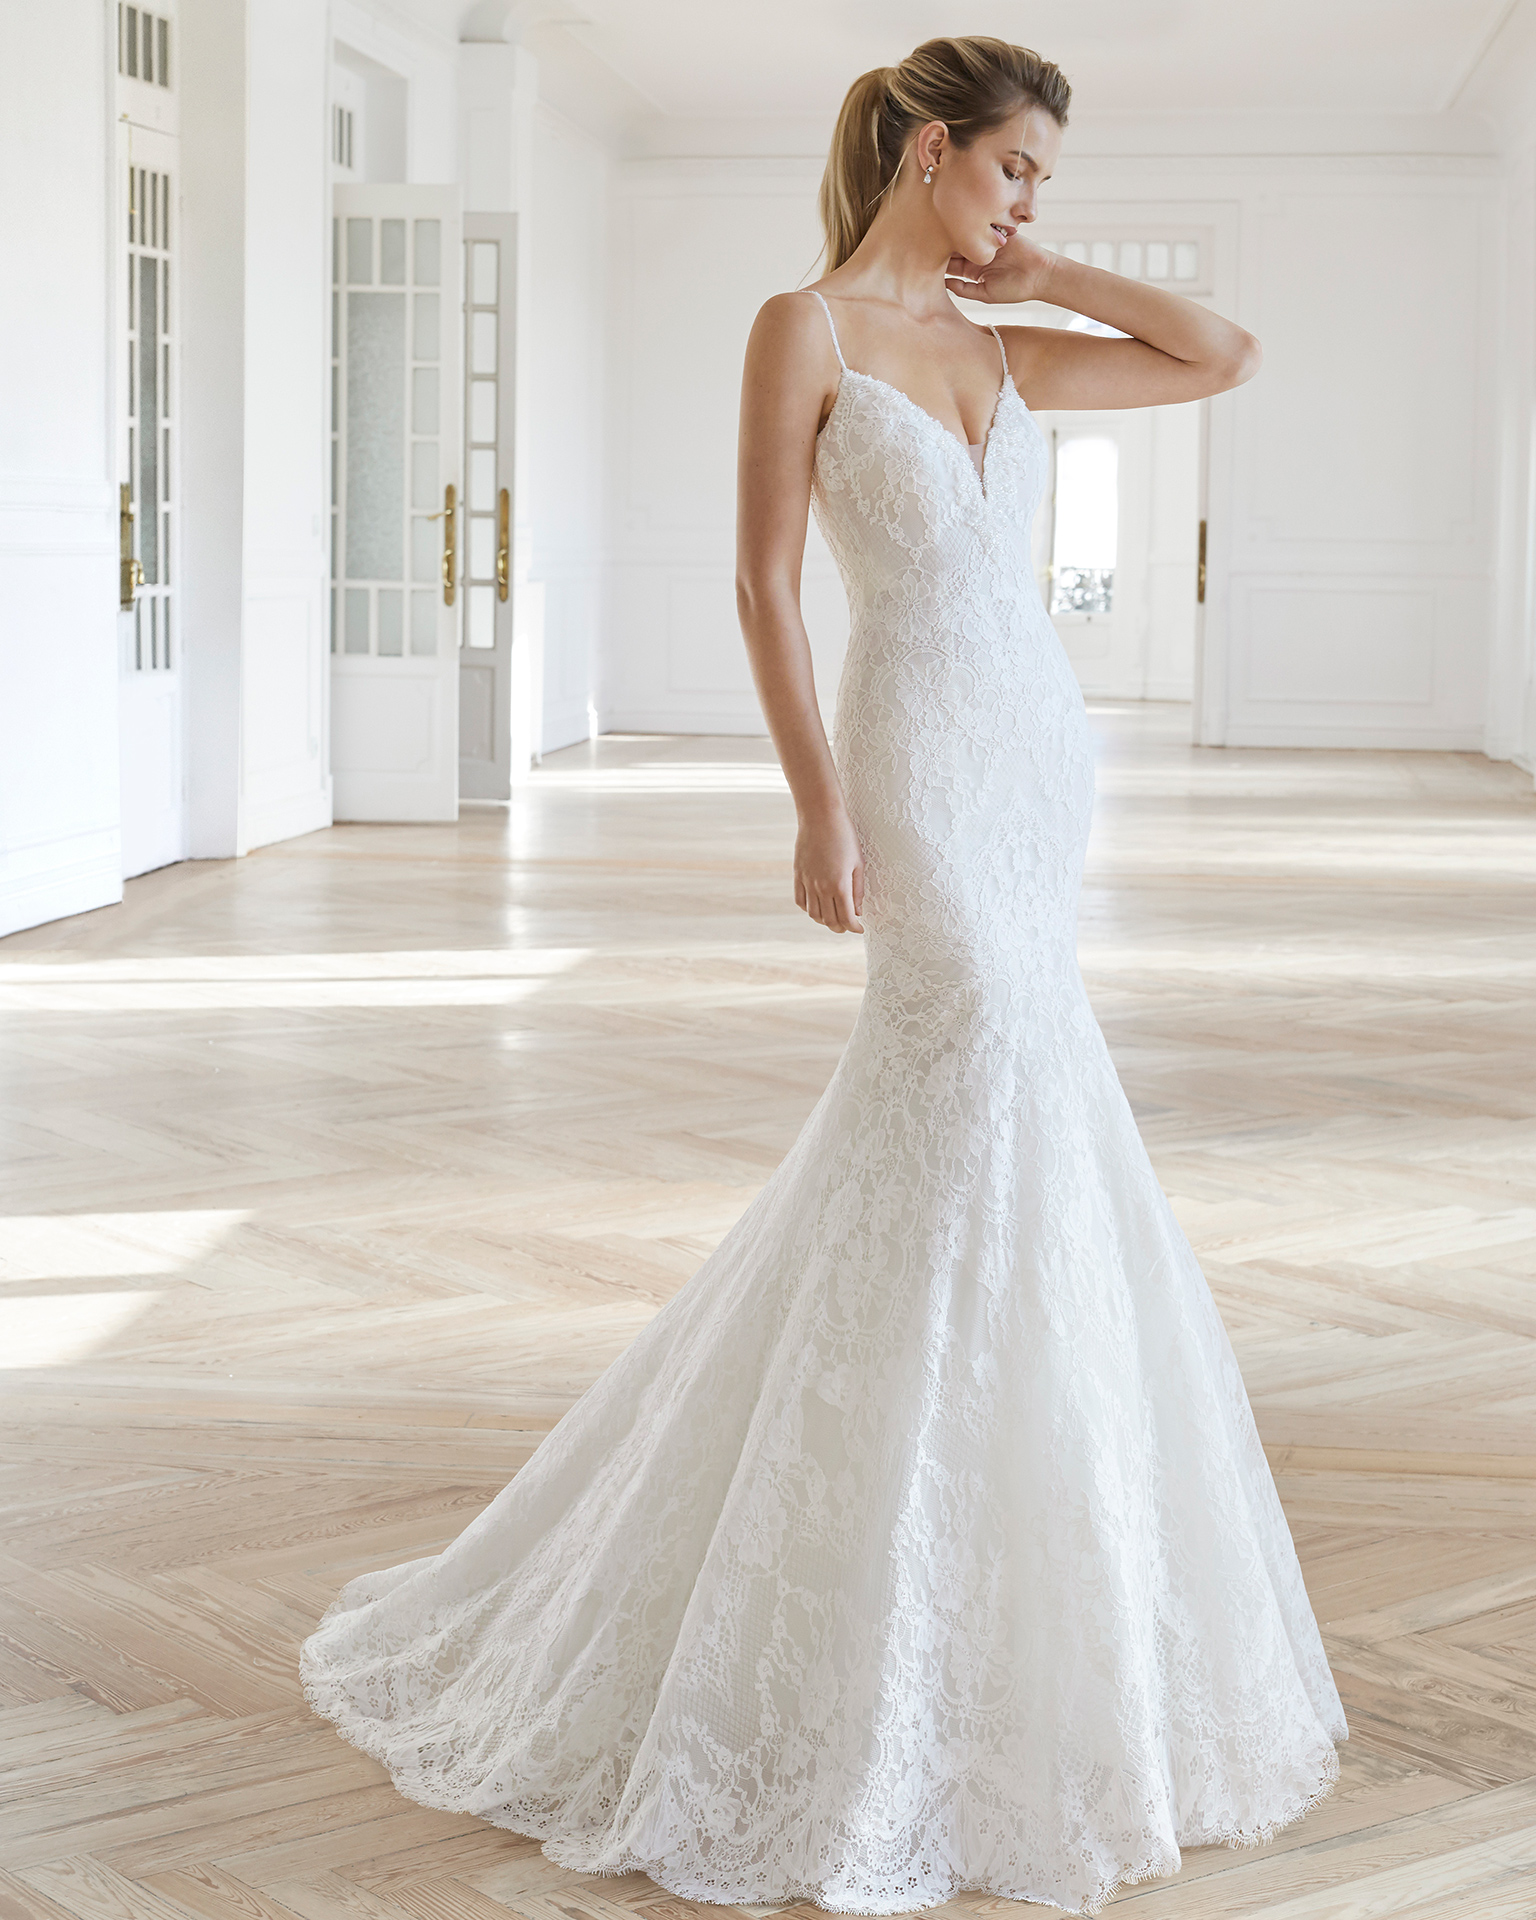 Mermaid-style wedding dress in beaded lace. V-neckline with beaded straps and V-back. Available in natural and natural/nude. 2019 AIRE BARCELONA Collection.